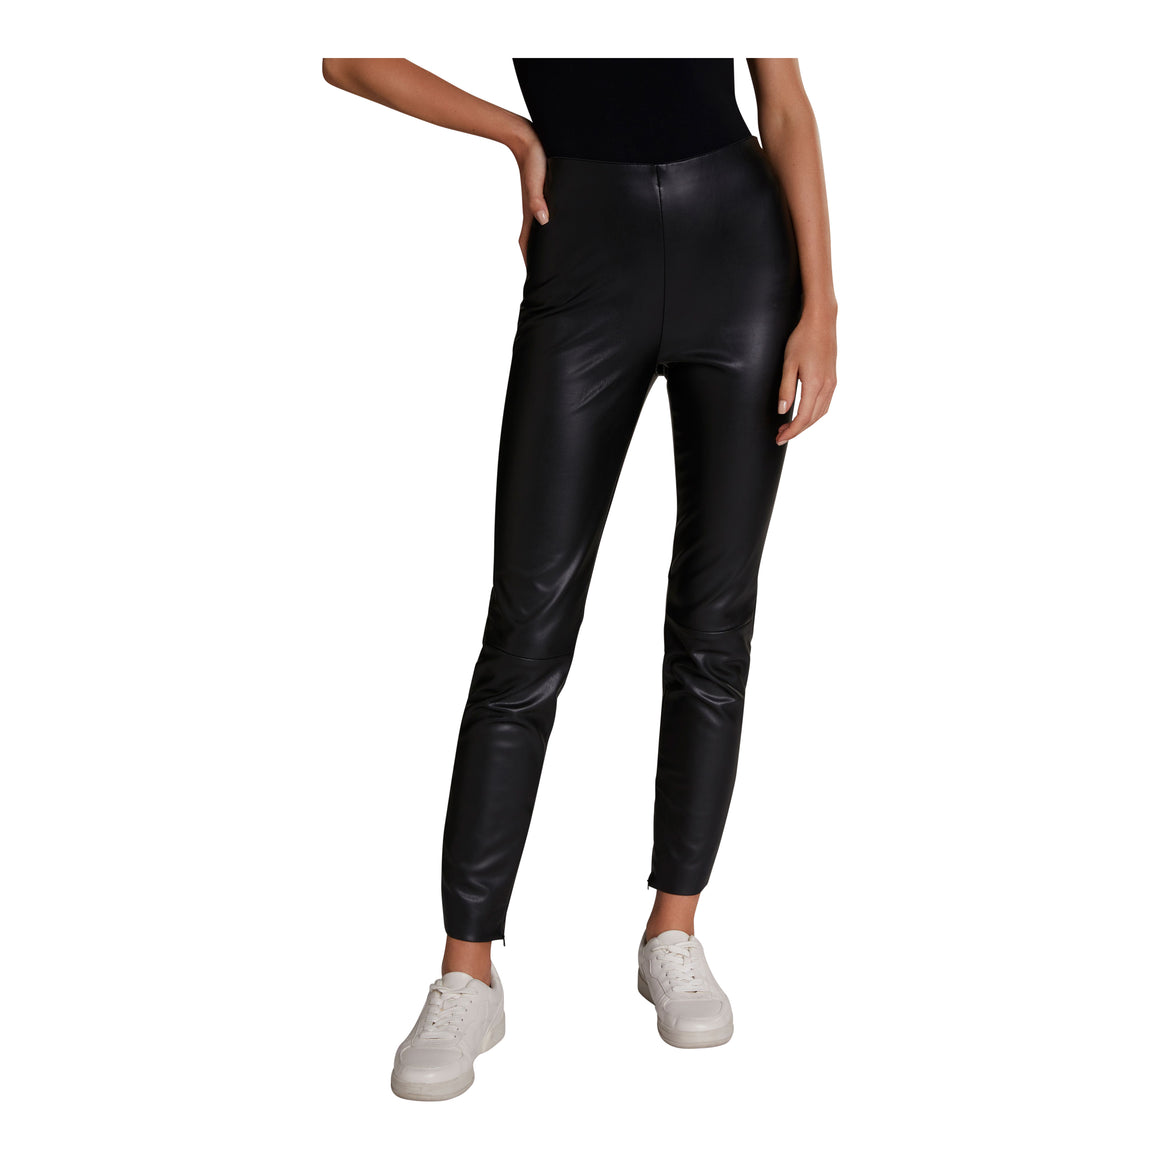 PU Legging for Women in Black